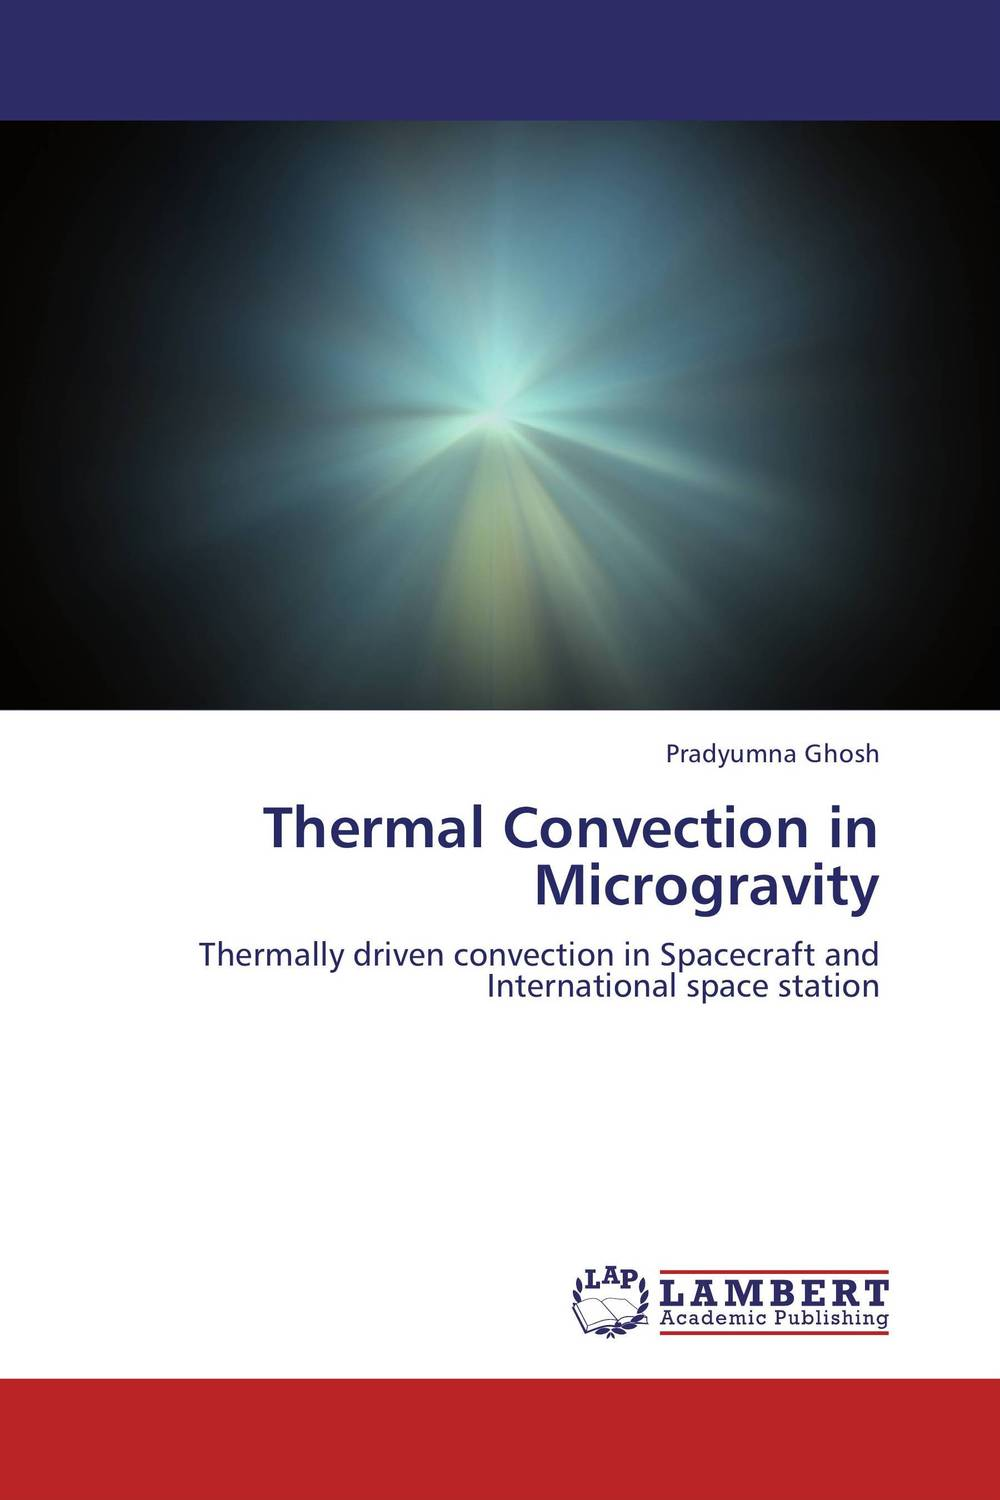 Thermal Convection in Microgravity